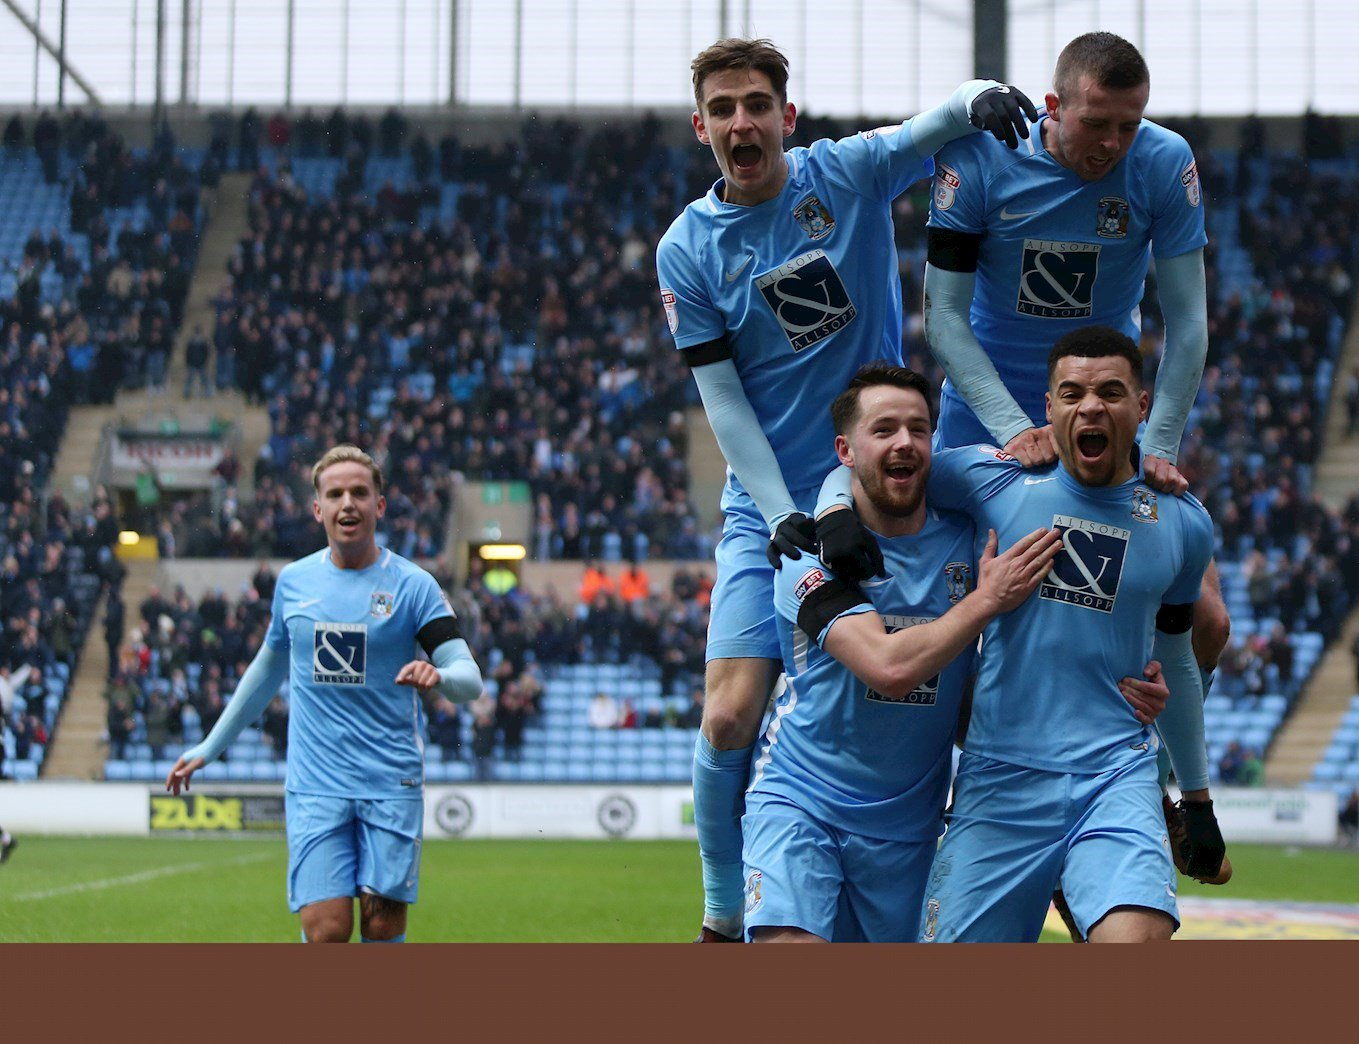 Jubilent Coventry City players celebrate goal Against Swindon Town